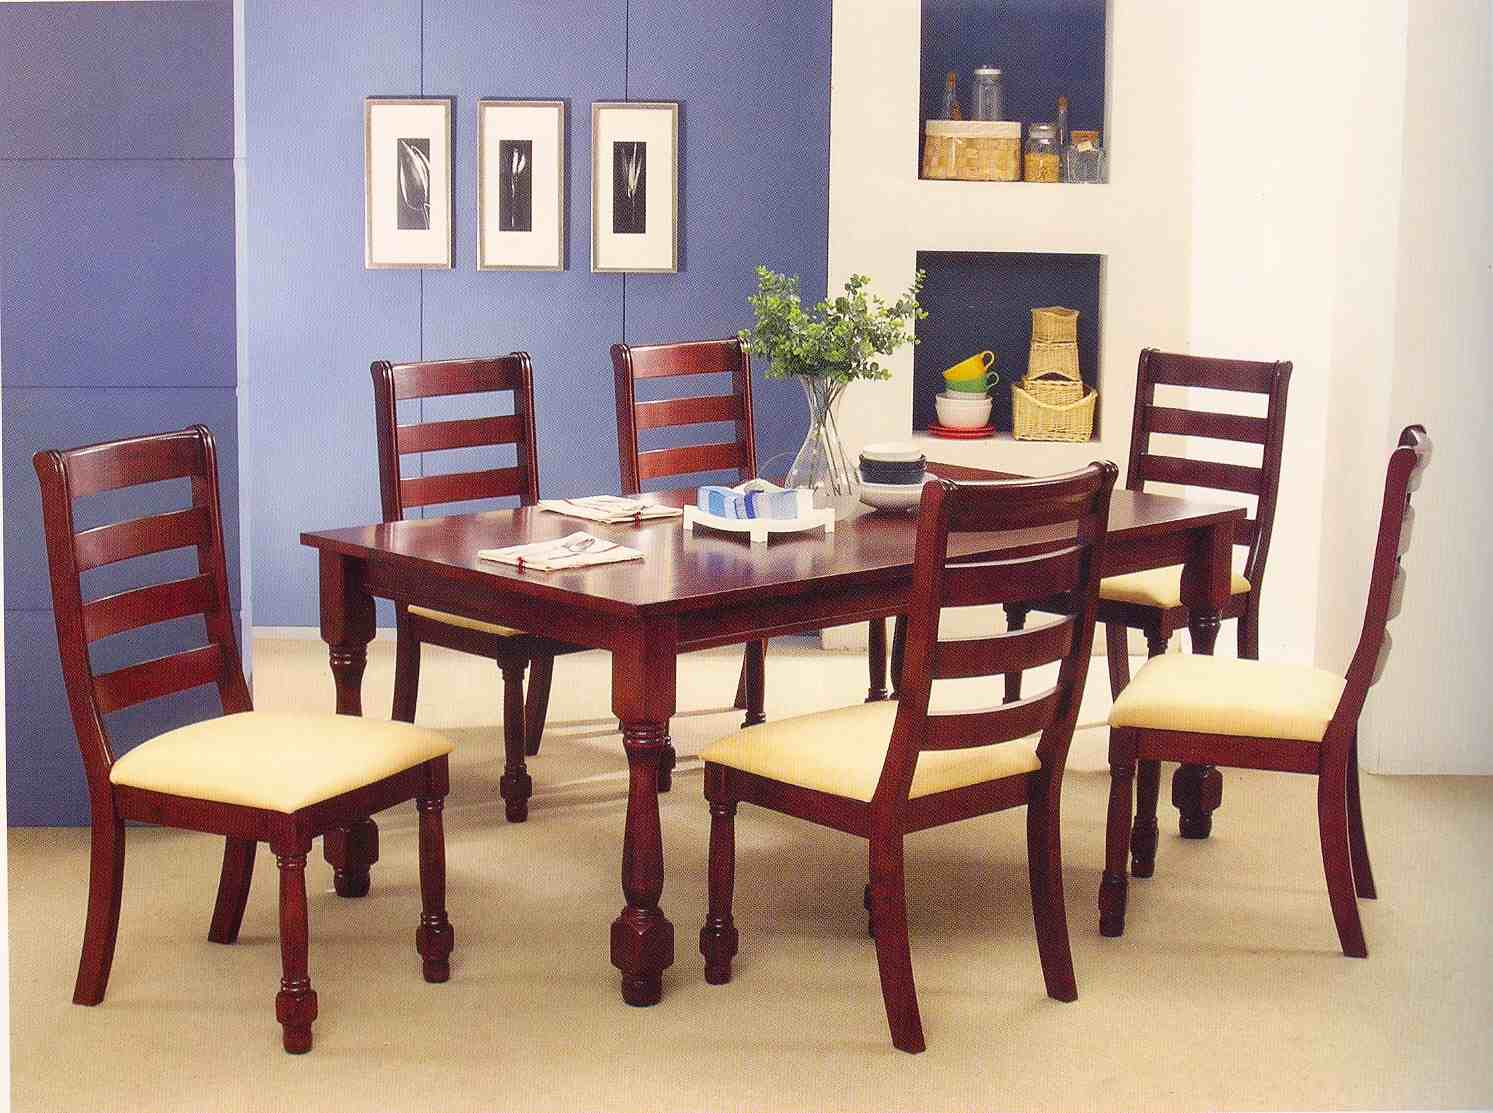 Dining room set for even more tastier meals home furniture design - Images of dining room sets ...